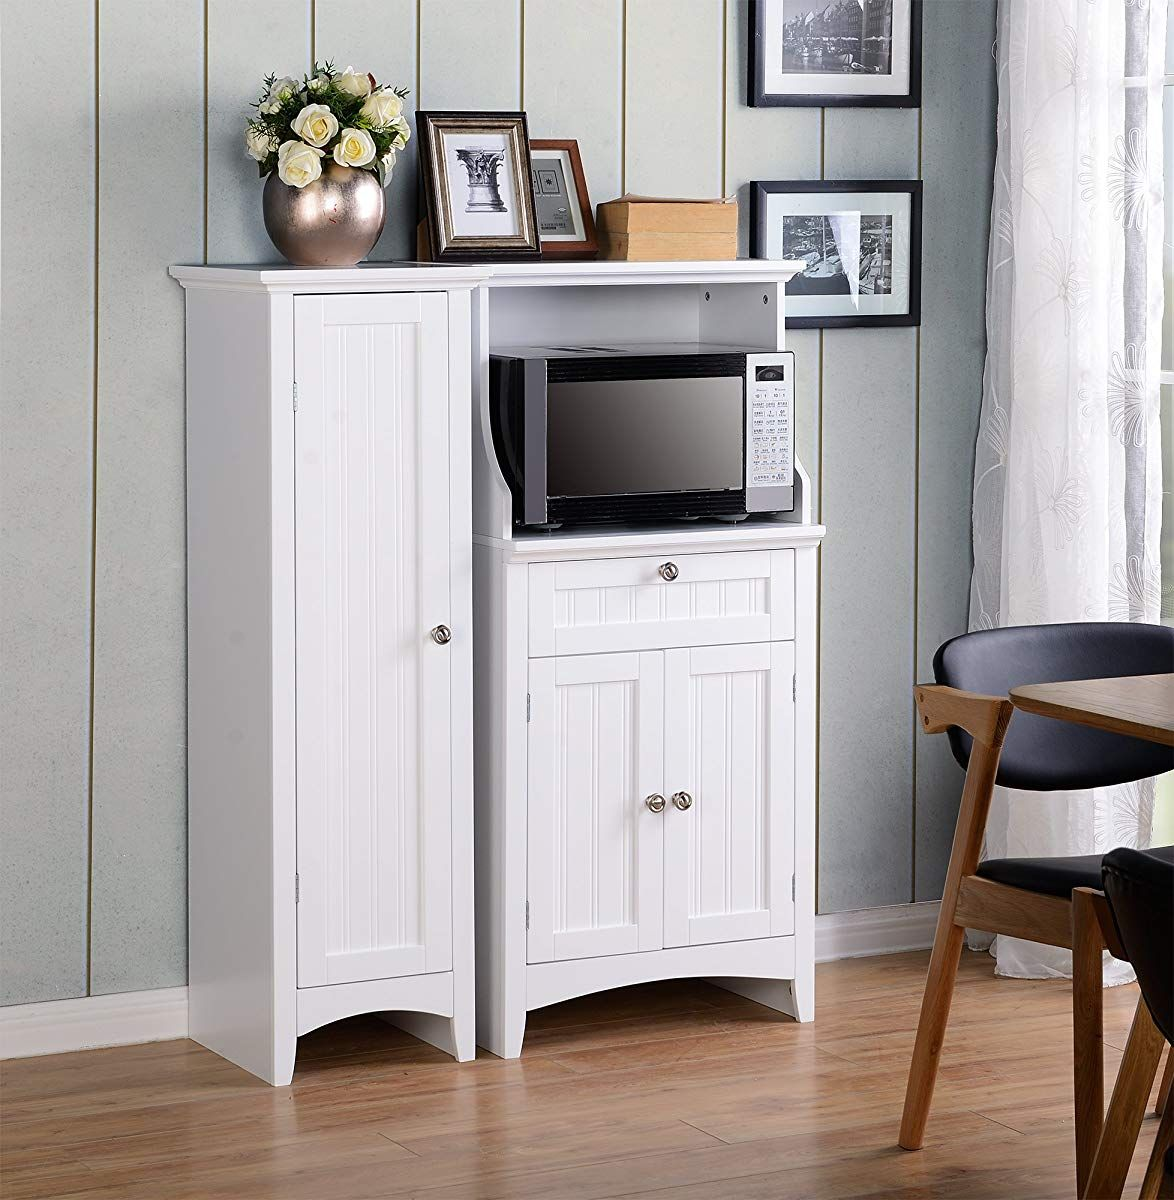 American Furniture Classics Os Home One Door Kitchen Storage